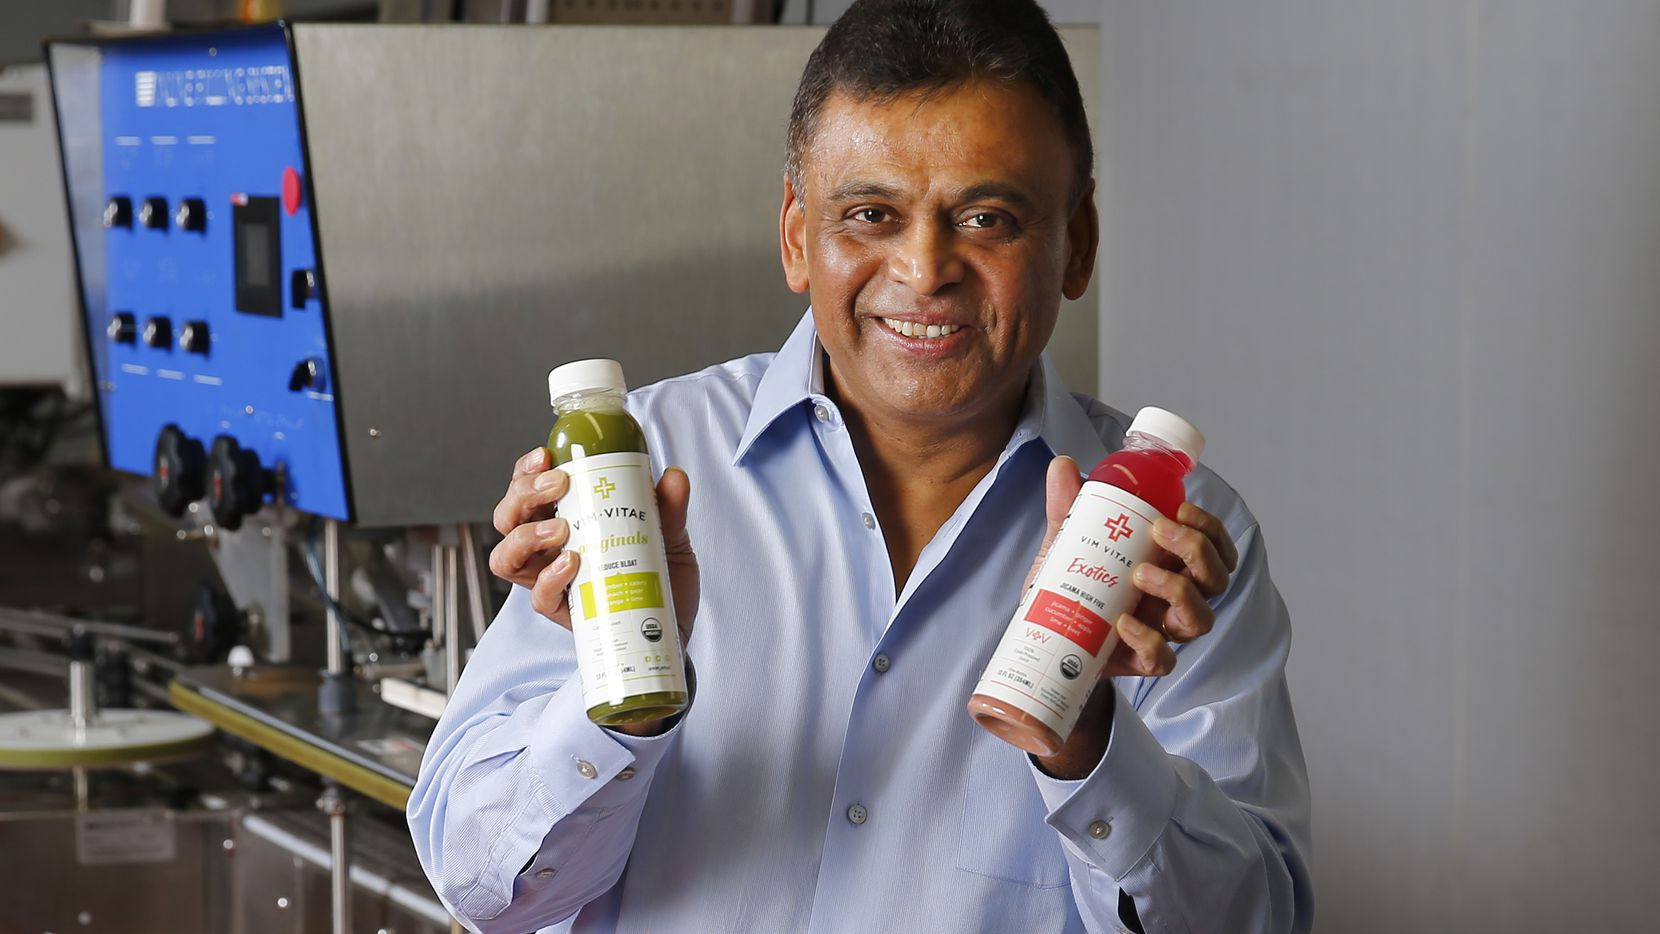 Vim Vitae CEO Nick Mysore poses with some of their natural, organic juices they produce at their Dallas facility, Wednesday, January 18, 2017. Mysore, who is a veteran of Dean Foods and ConAgra, was hired to turn Vim Vitae, a Dallas-based healthy juice company, into a national brand after a private equity investment. (Tom Fox/The Dallas Morning News)